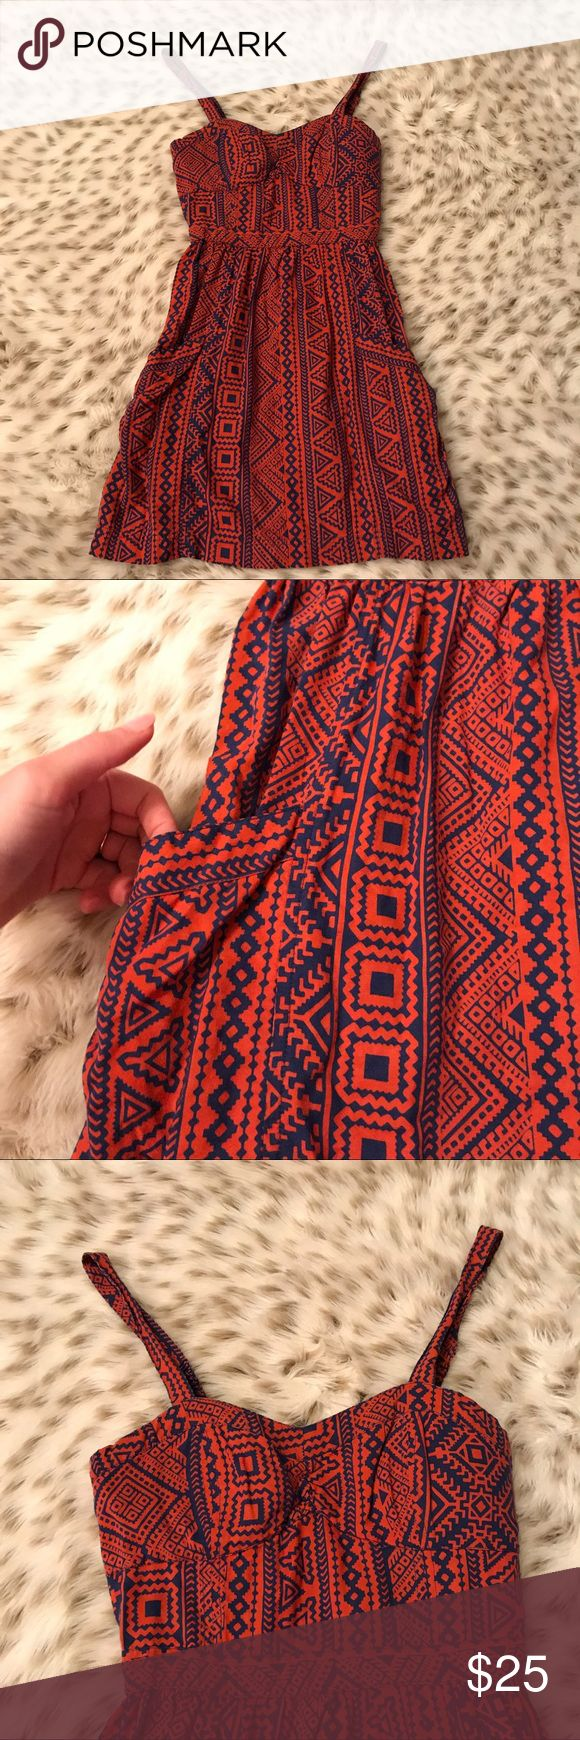 American Eagle Aztec Print Strappy Dress American Eagle blue and orange Aztec print dress! Size 2. Strappy back. Corset style top. Zip closure on side. Length is 32 inches from shoulder to hem. Excellent used condition. American Eagle Outfitters Dresses